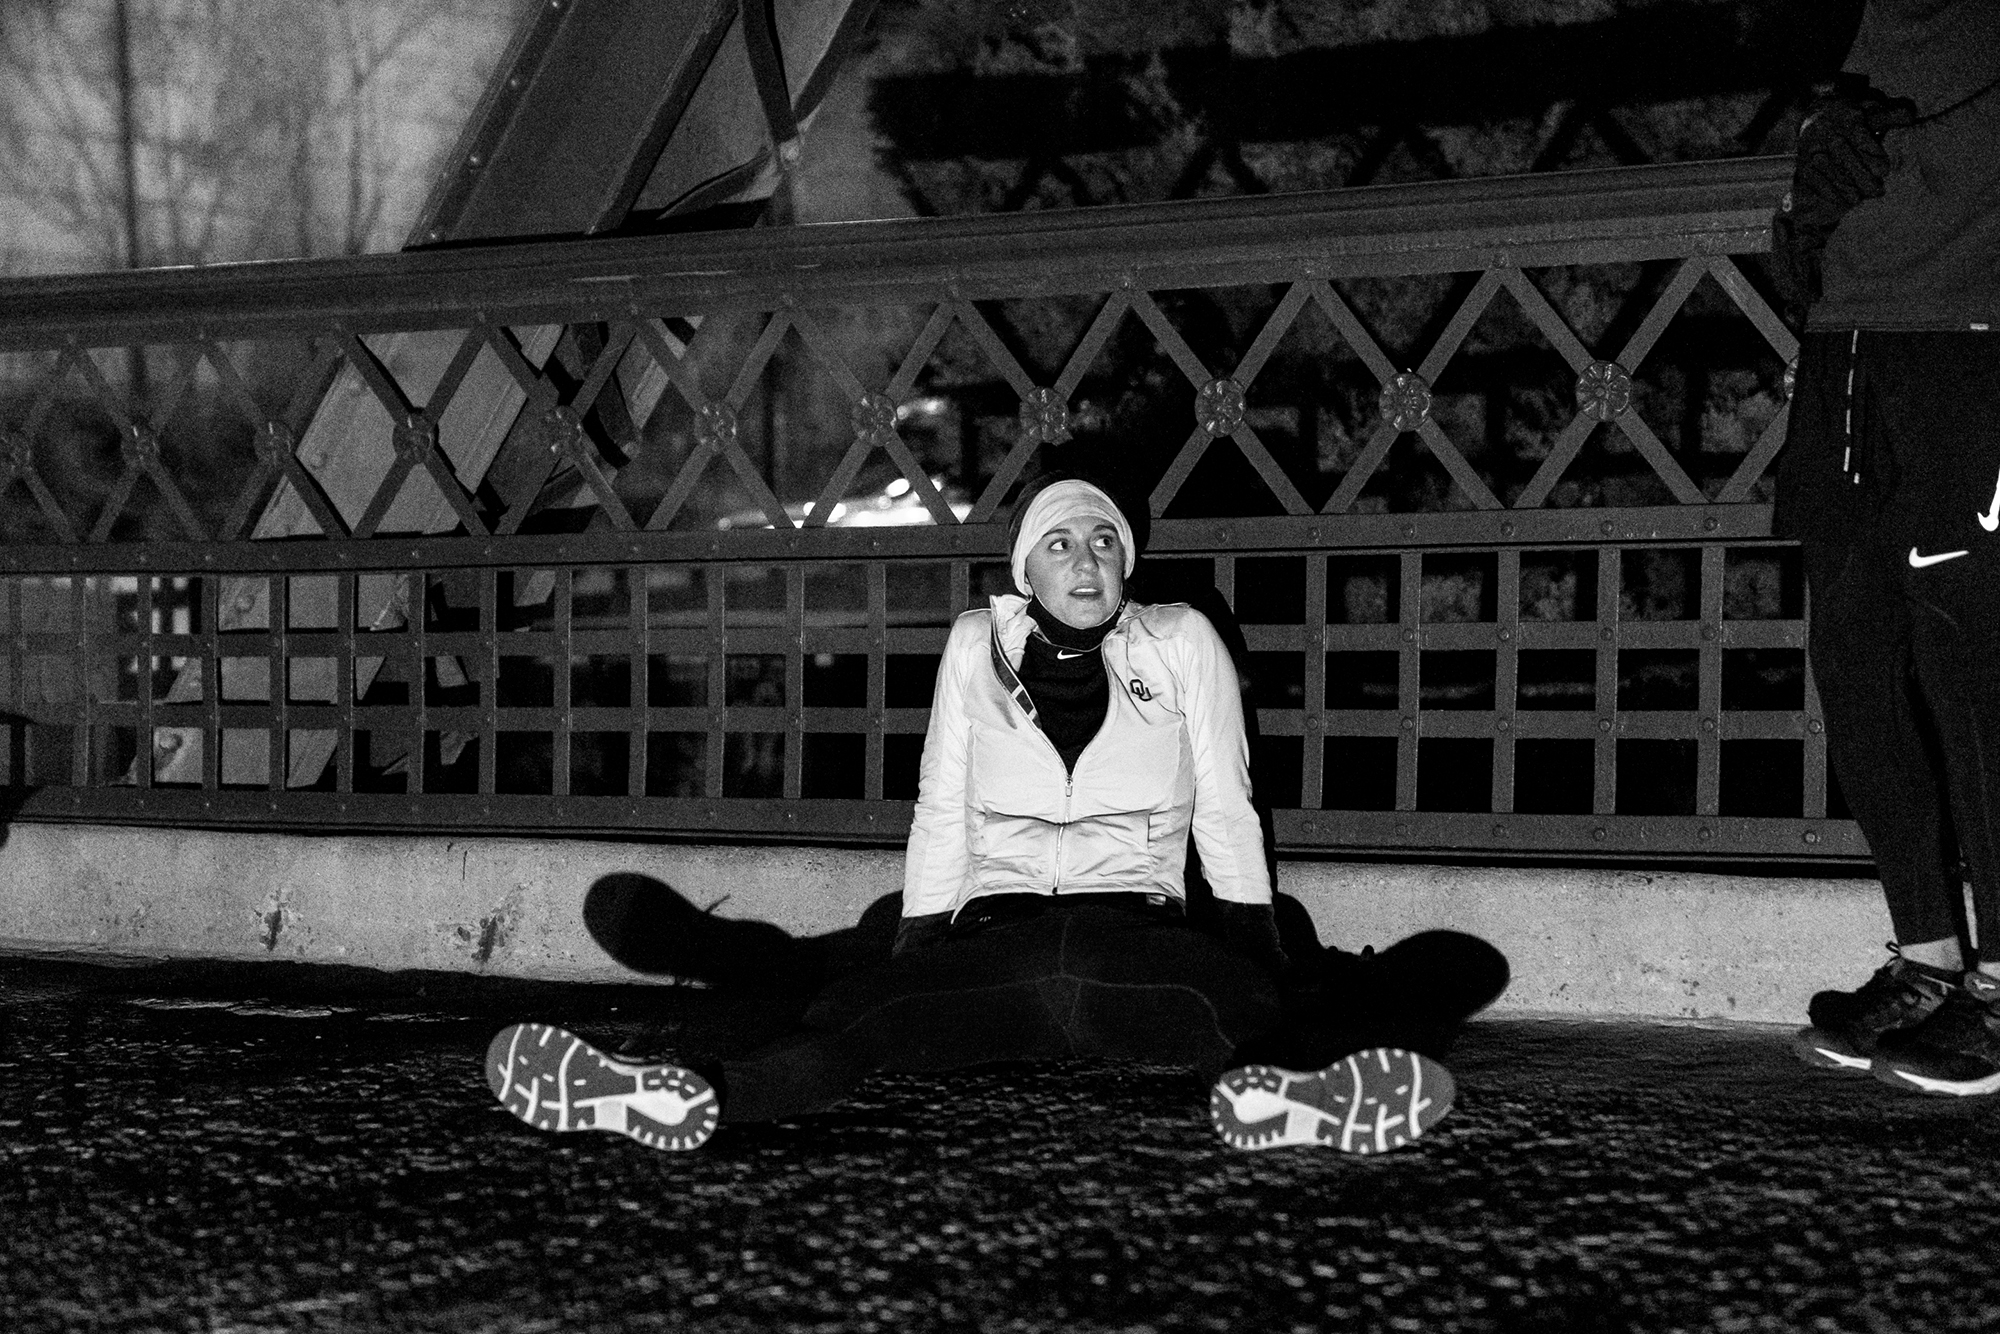 Matt Trappe photographs exhausted runner at the end sprawled out on the pavement for Take the Bridge in Denver